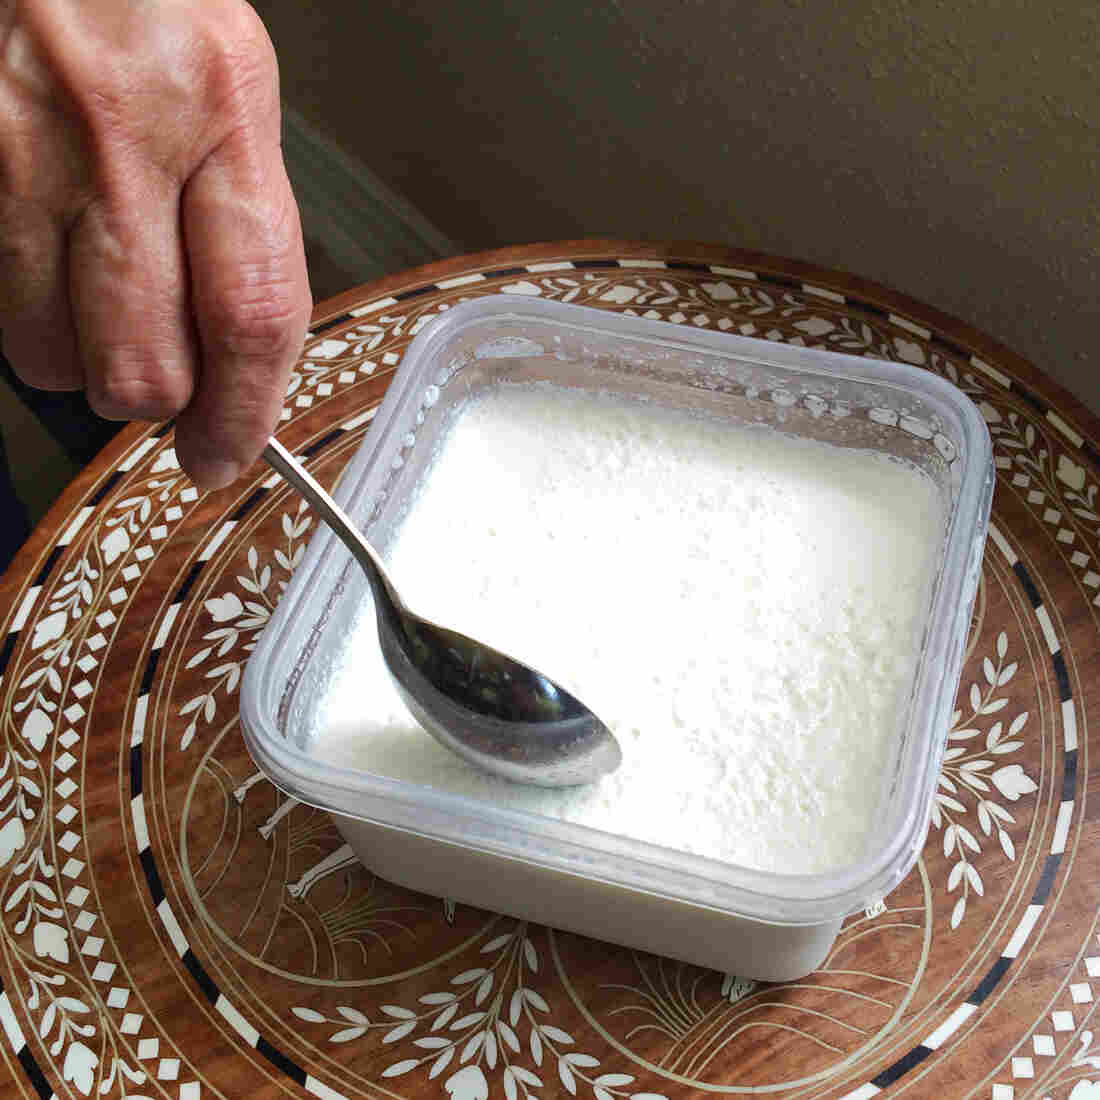 The 'Immortal' Homemade Yogurt That Traveled 'Round The World